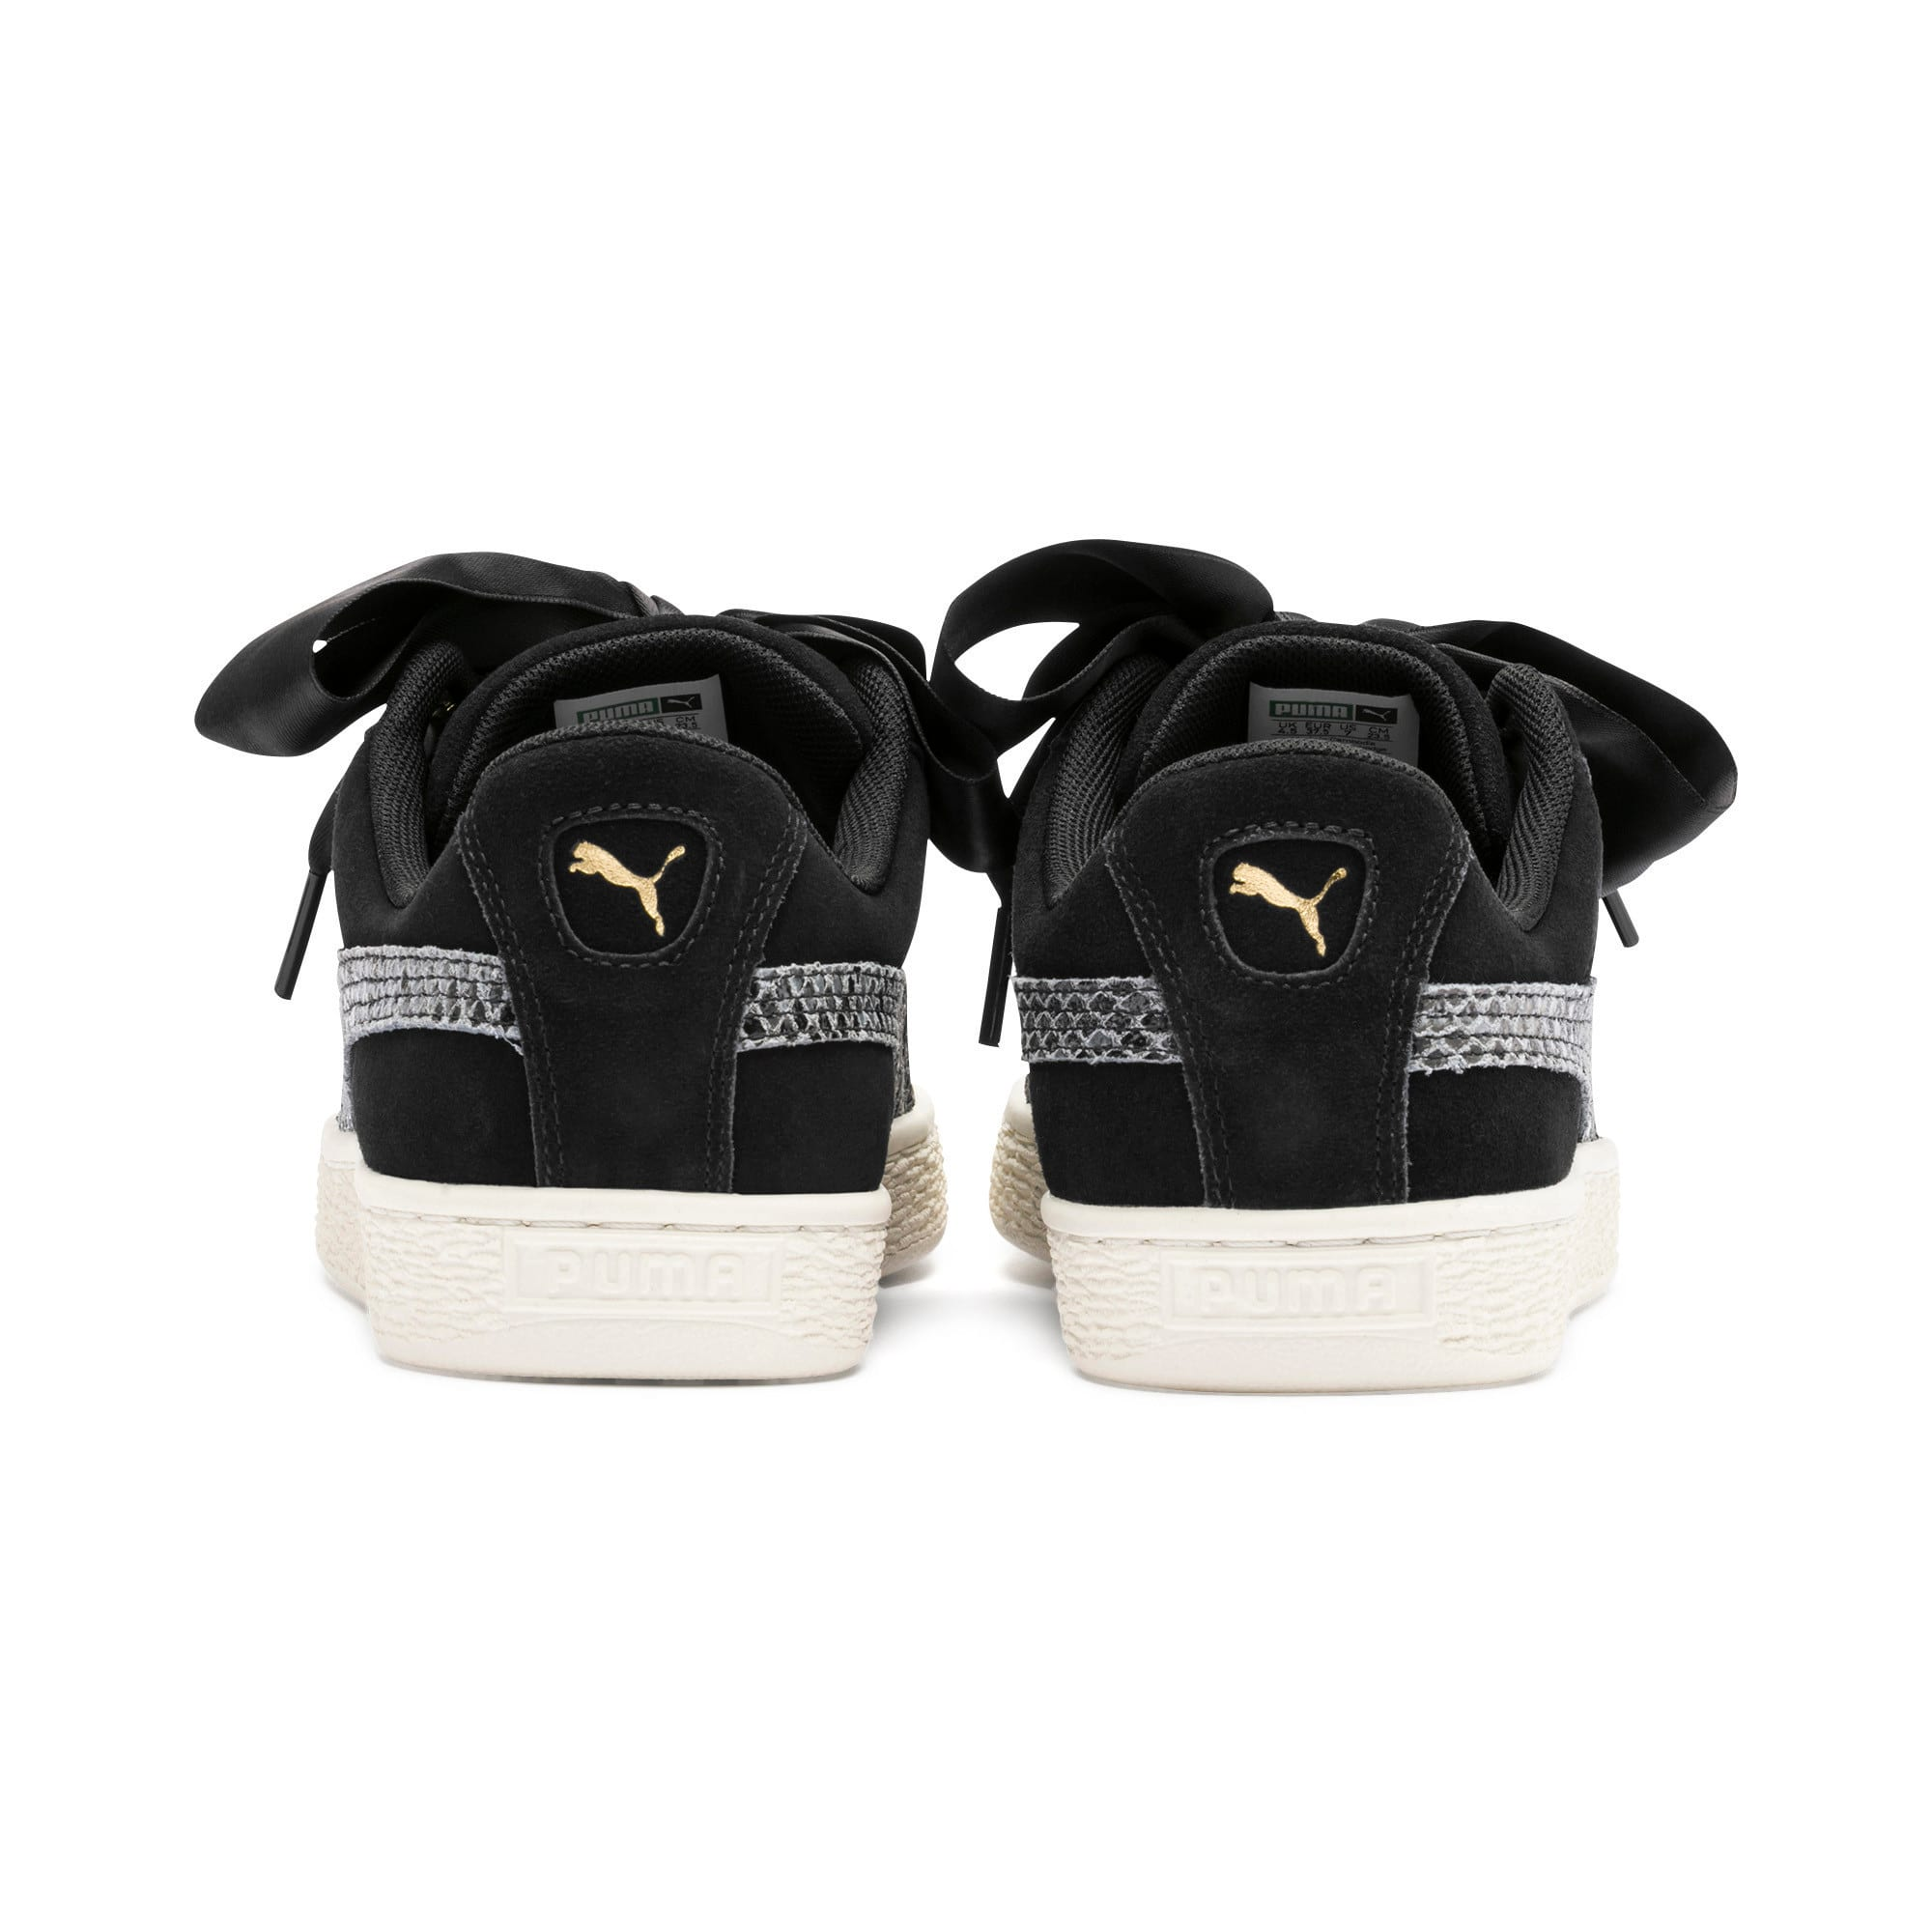 Thumbnail 6 of Suede Heart Snake Lux Women's Trainers, Puma Black-Puma Team Gold, medium-IND